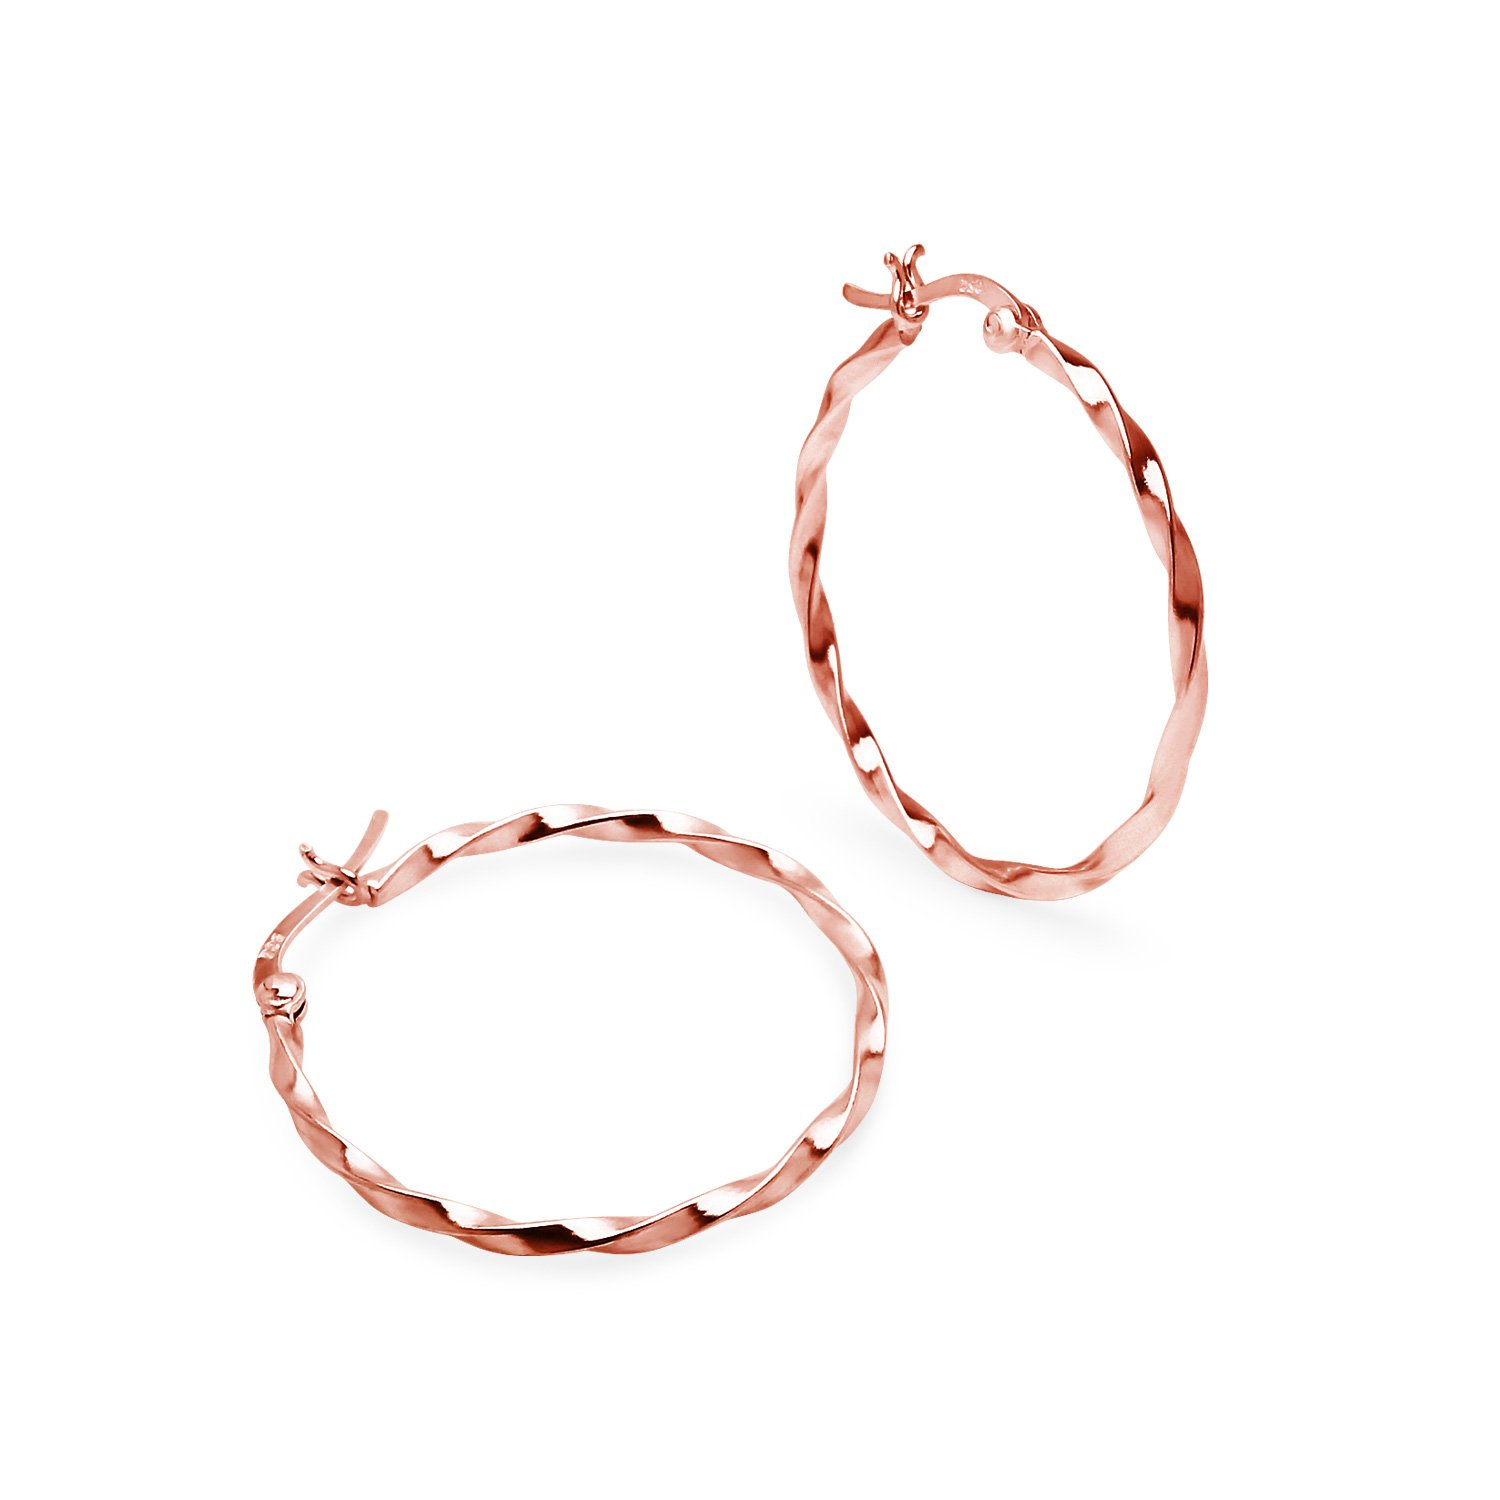 Sterling Silver Rose Gold Flash Large Twisted Round 1.5mm Thin Hoop Earrings Available in 40mm